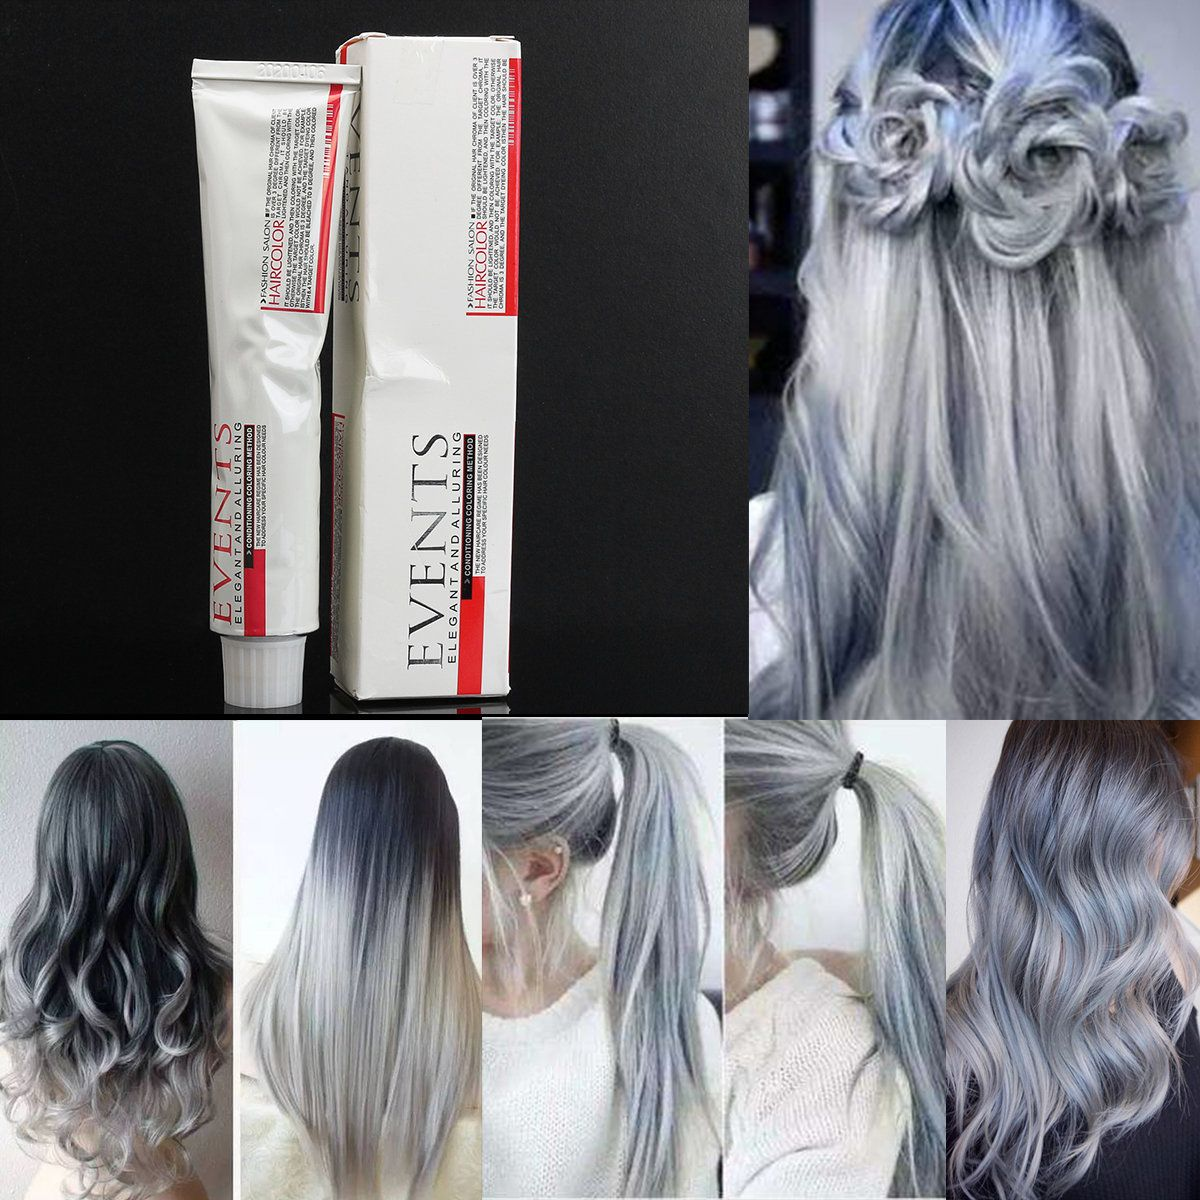 Light Gray Hair Dye Color Cream Fashion Styling Diy For Men